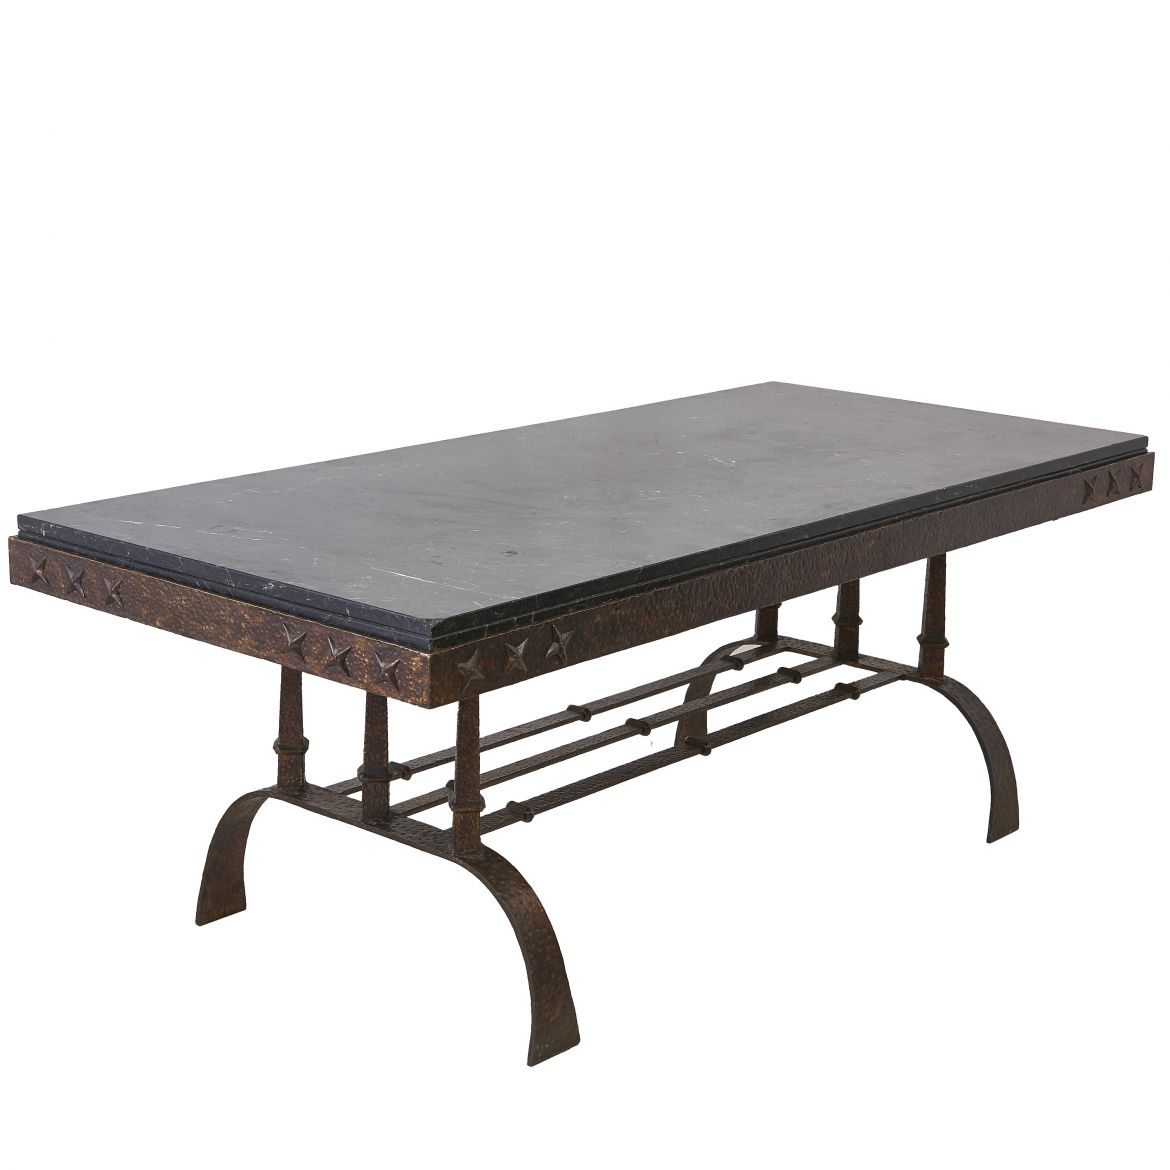 Large Spanish Iron and Marble Dining Table